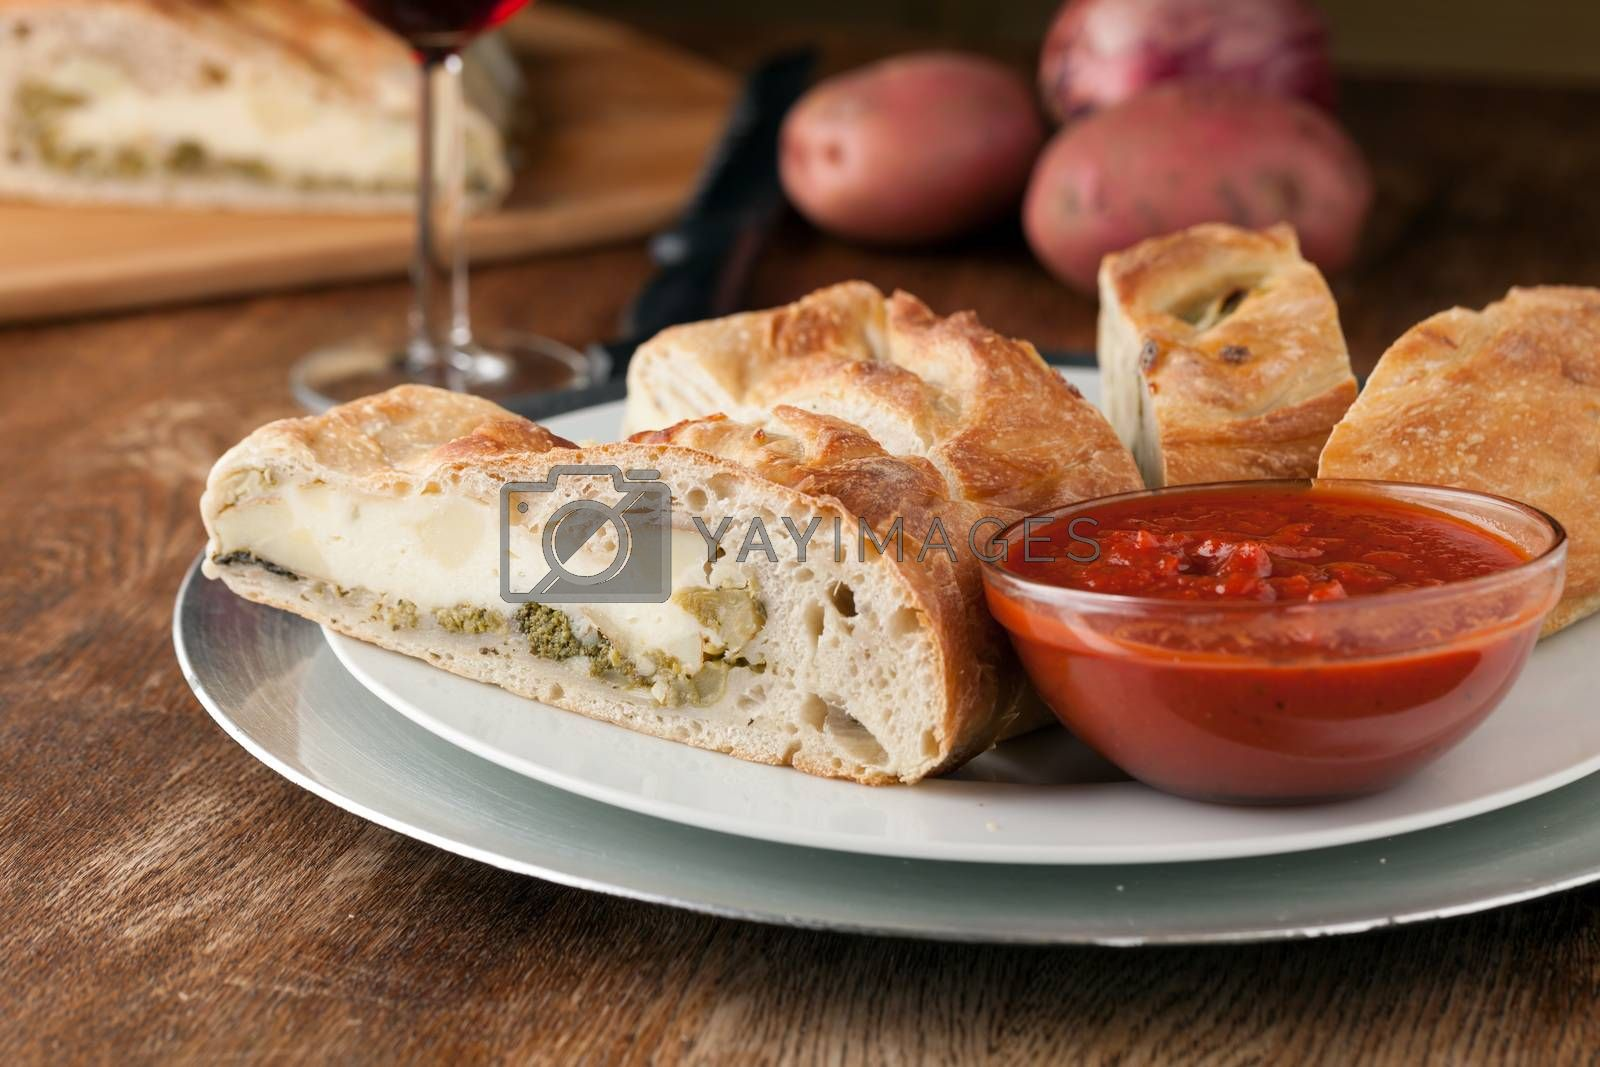 Homemade stromboli or stuffed bread with broccoli potatoes garlic onions and mozzarella cheese along with a side of marinara dipping sauce.